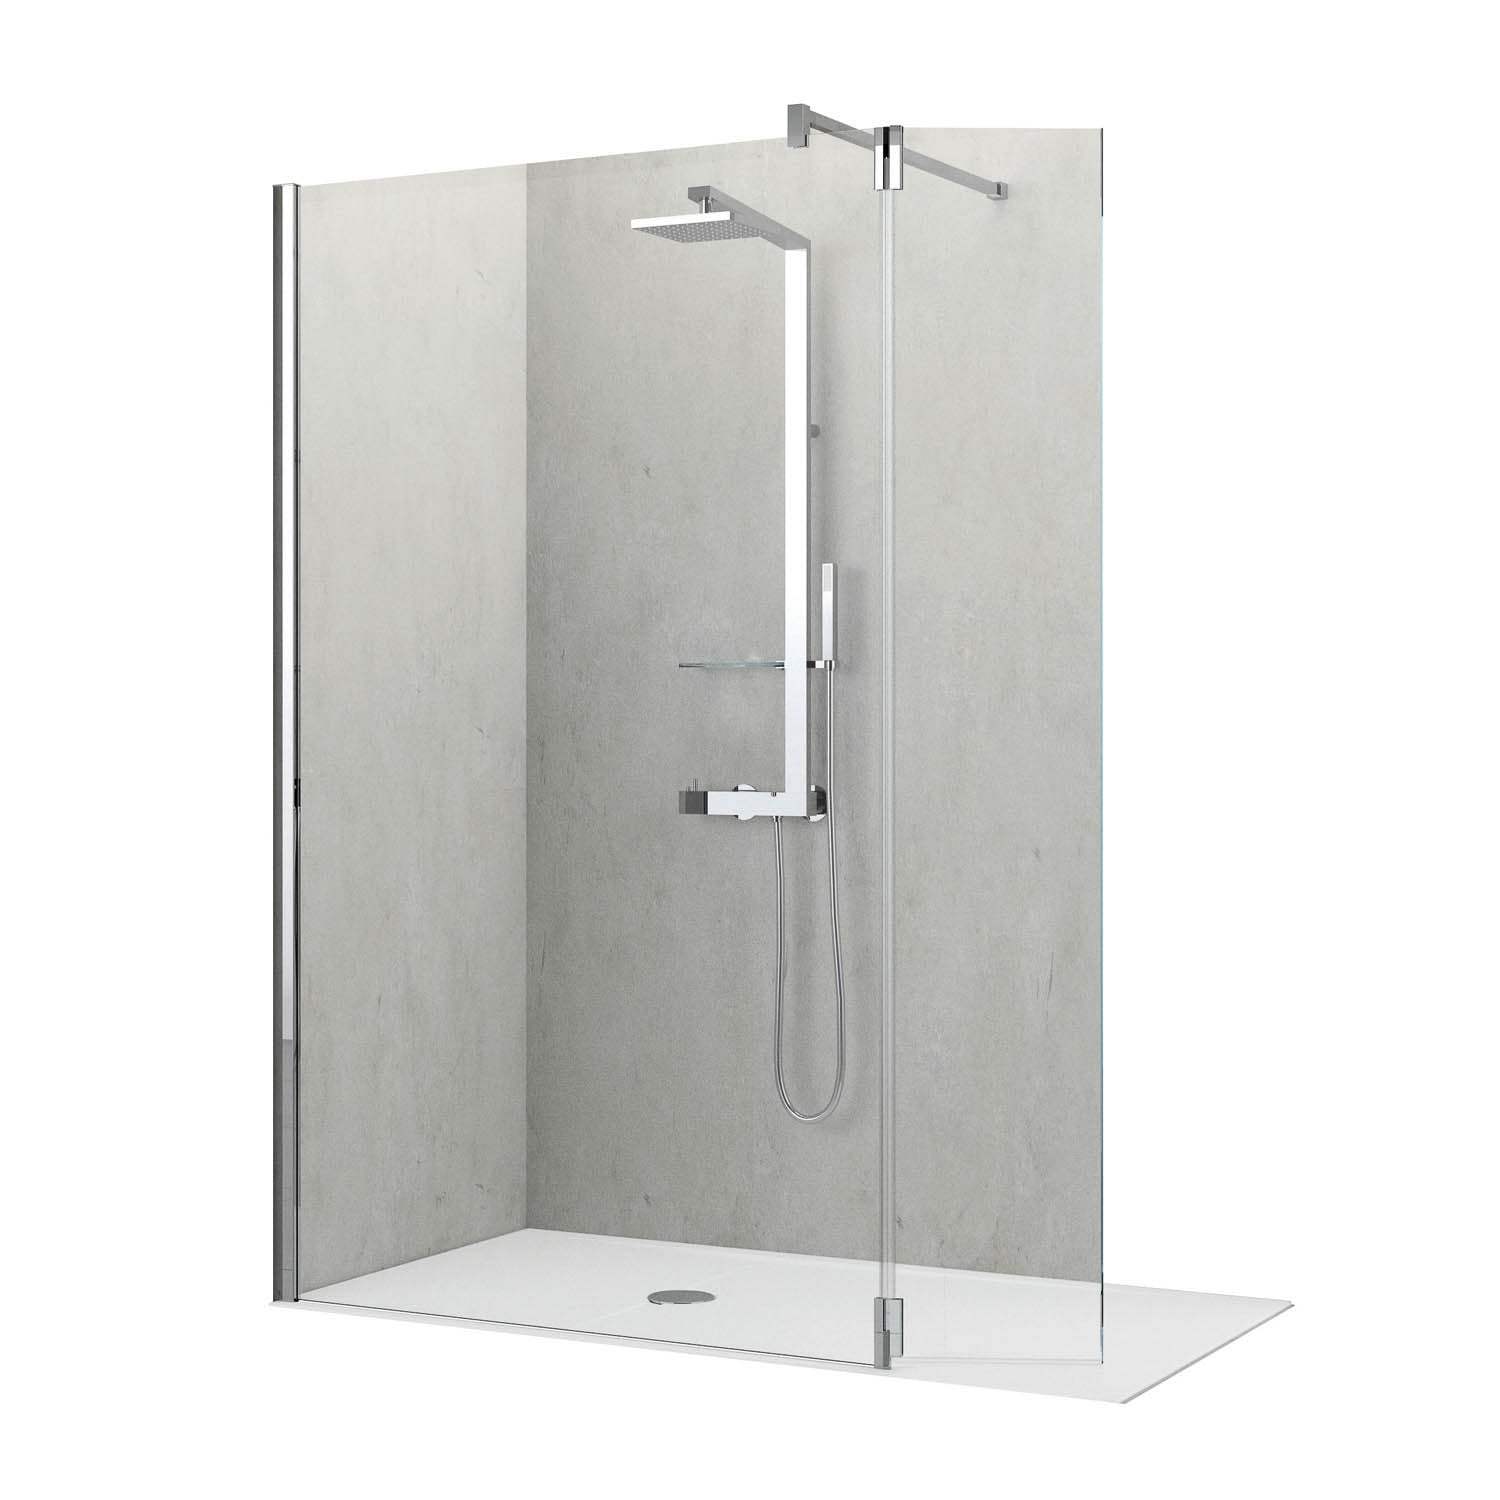 370mm Ergo Wet Room Deflector Panel Clear Glass with a chrome finish on a white background